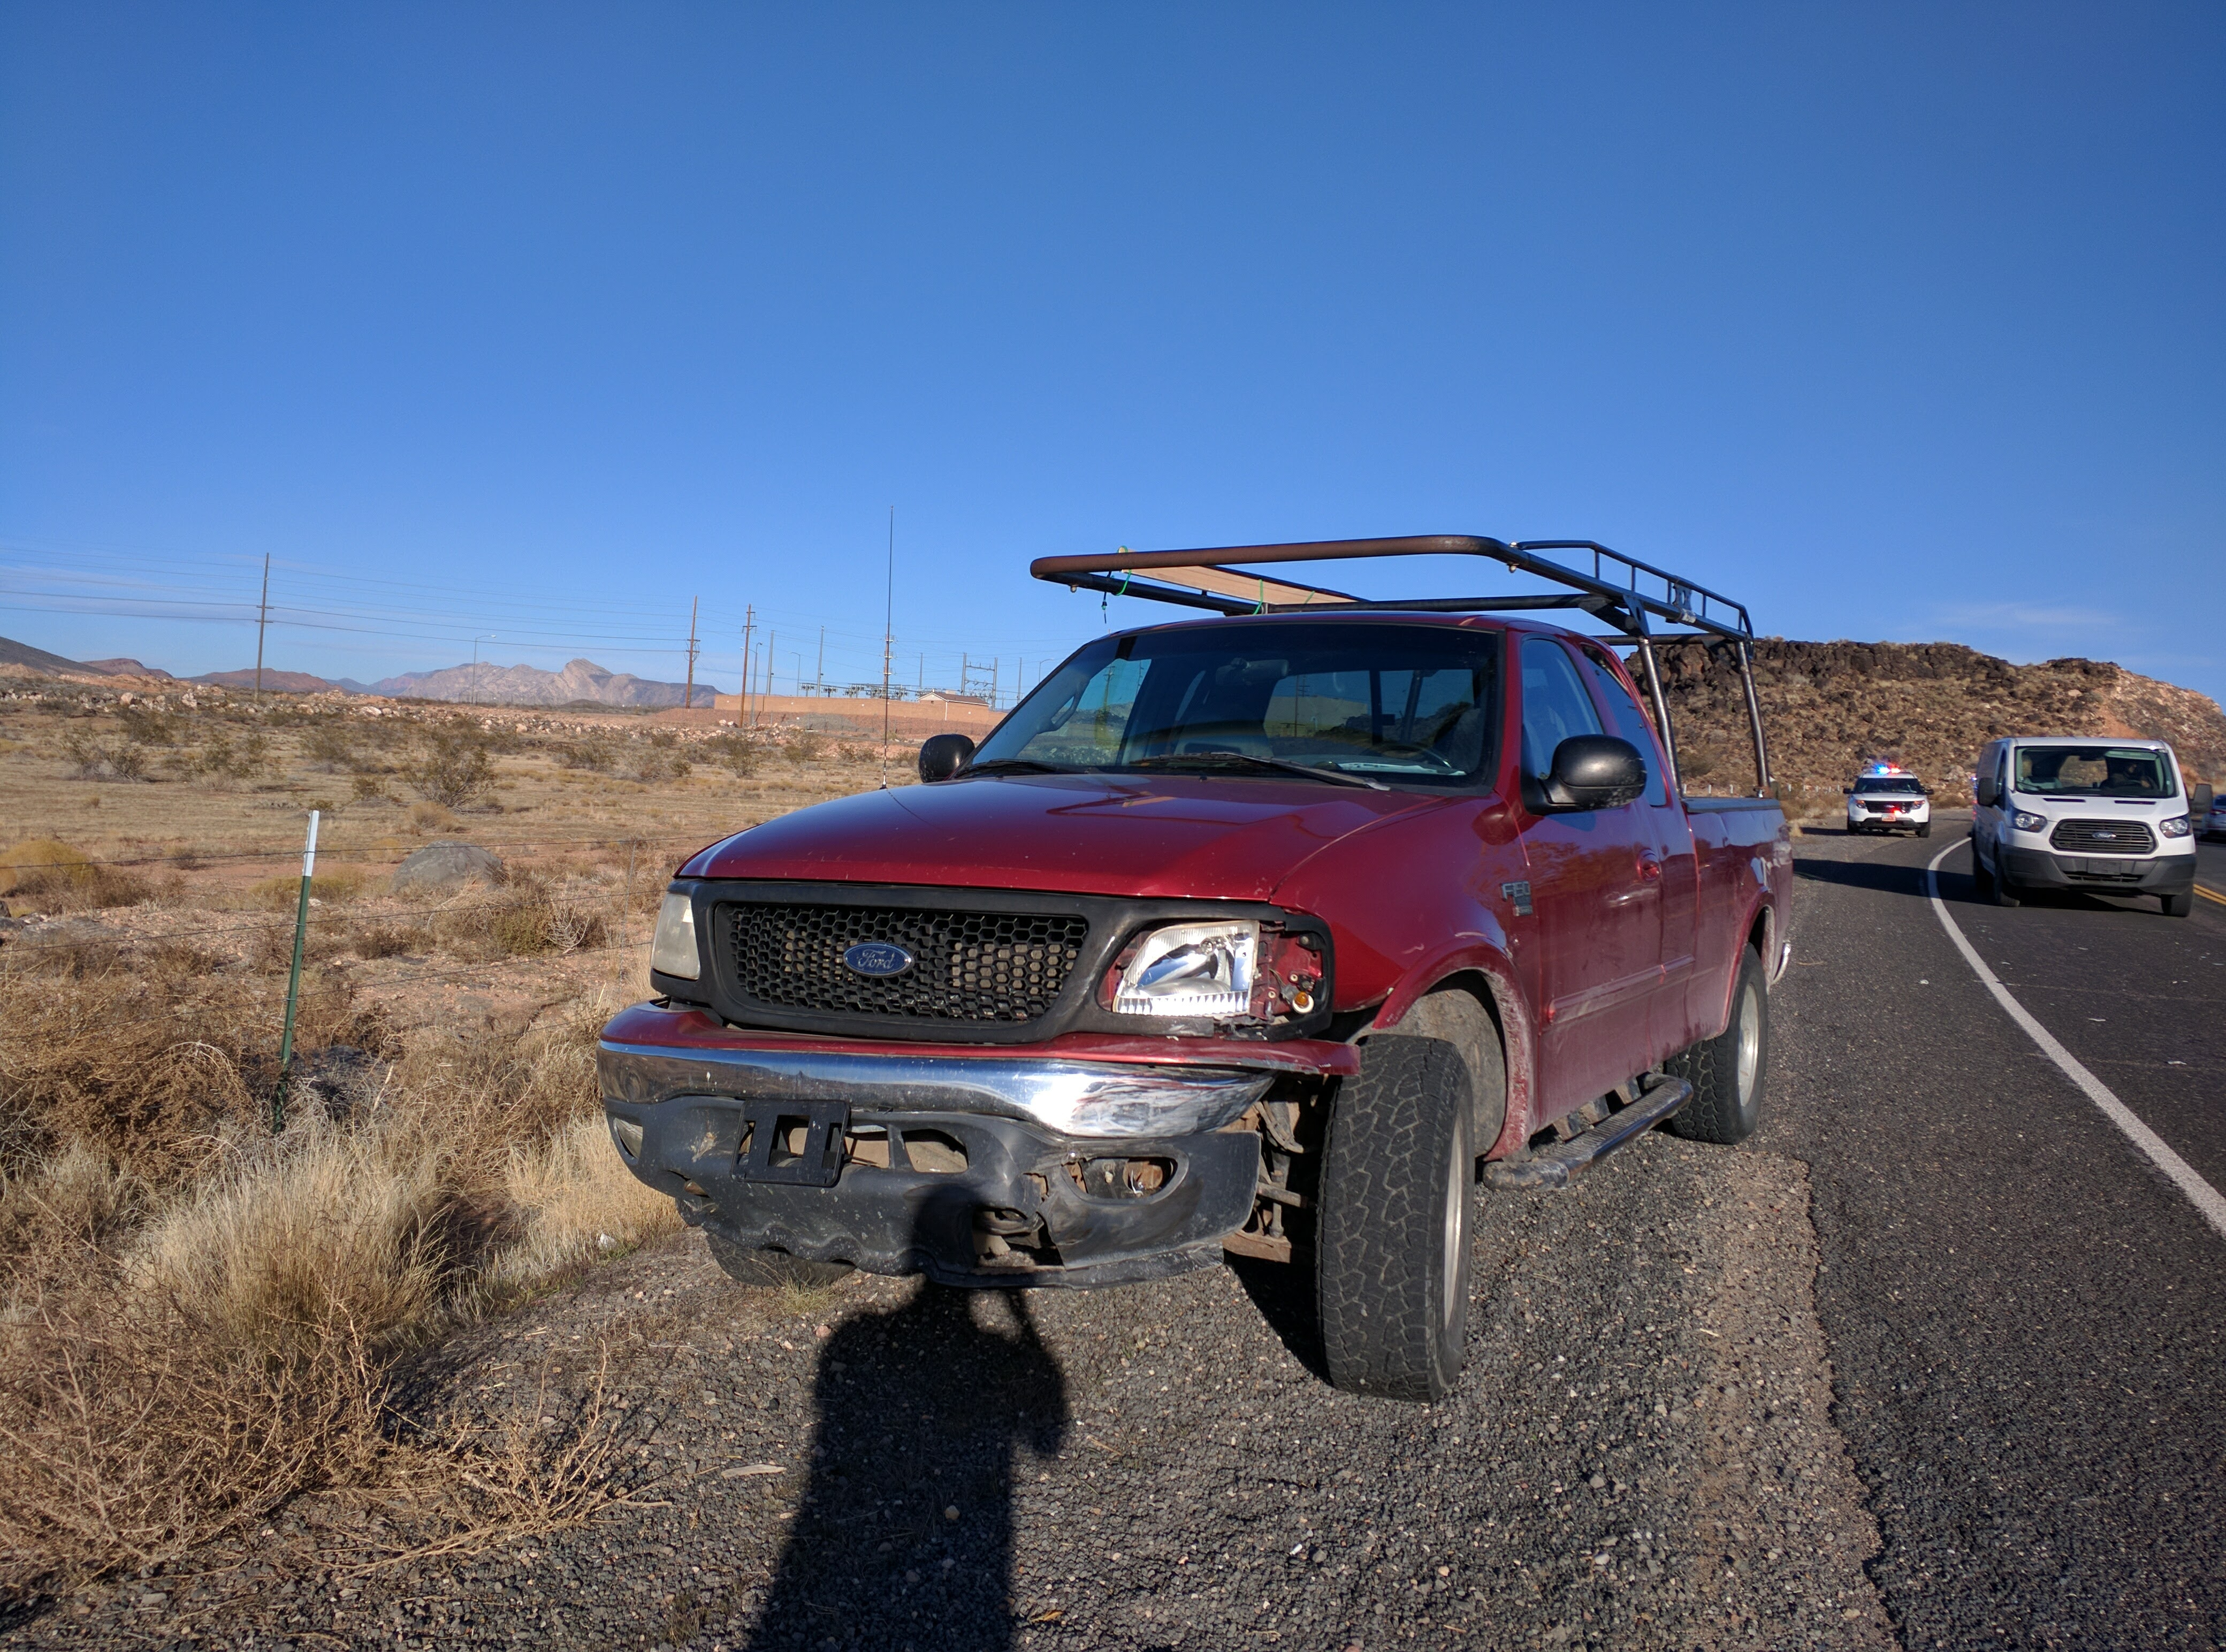 A 2000 red Ford F-150 is minorly damaged after a two-car crash on 600 North, Hurricane, Utah, Dec. 9, 2016 | Photo by Joseph Witham, St. George News